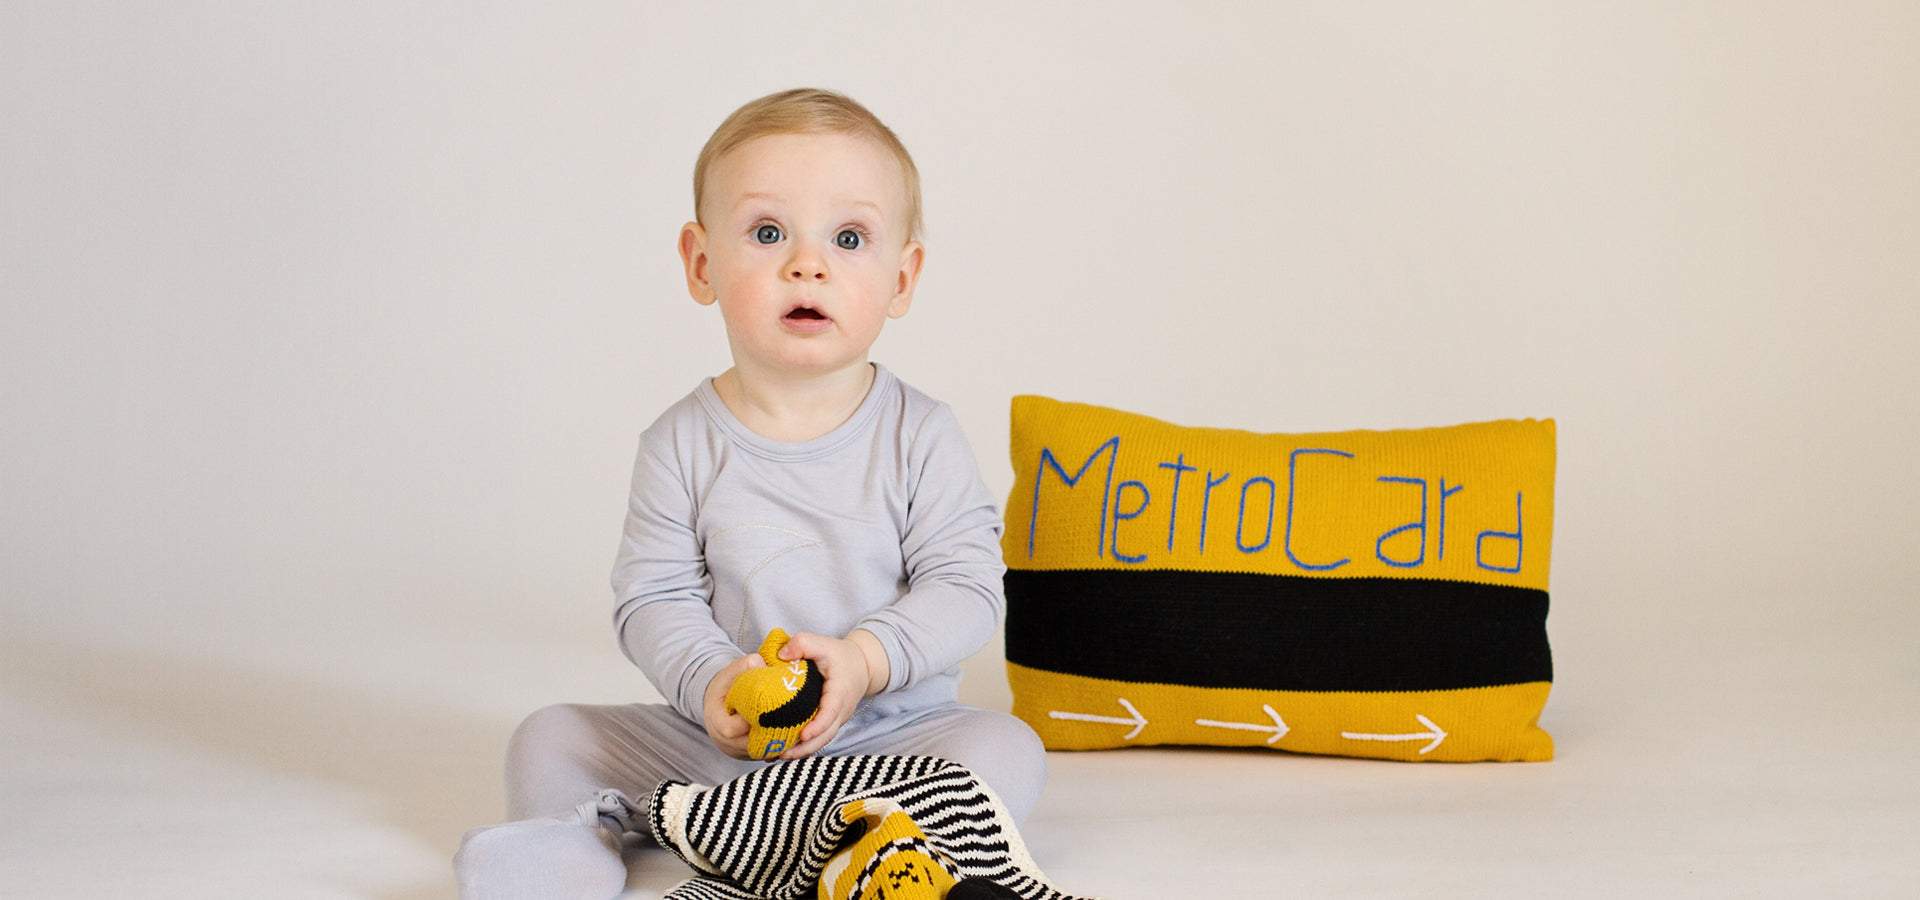 Organic Taxi Lovey, Metrocard Baby Pillow and Rattle